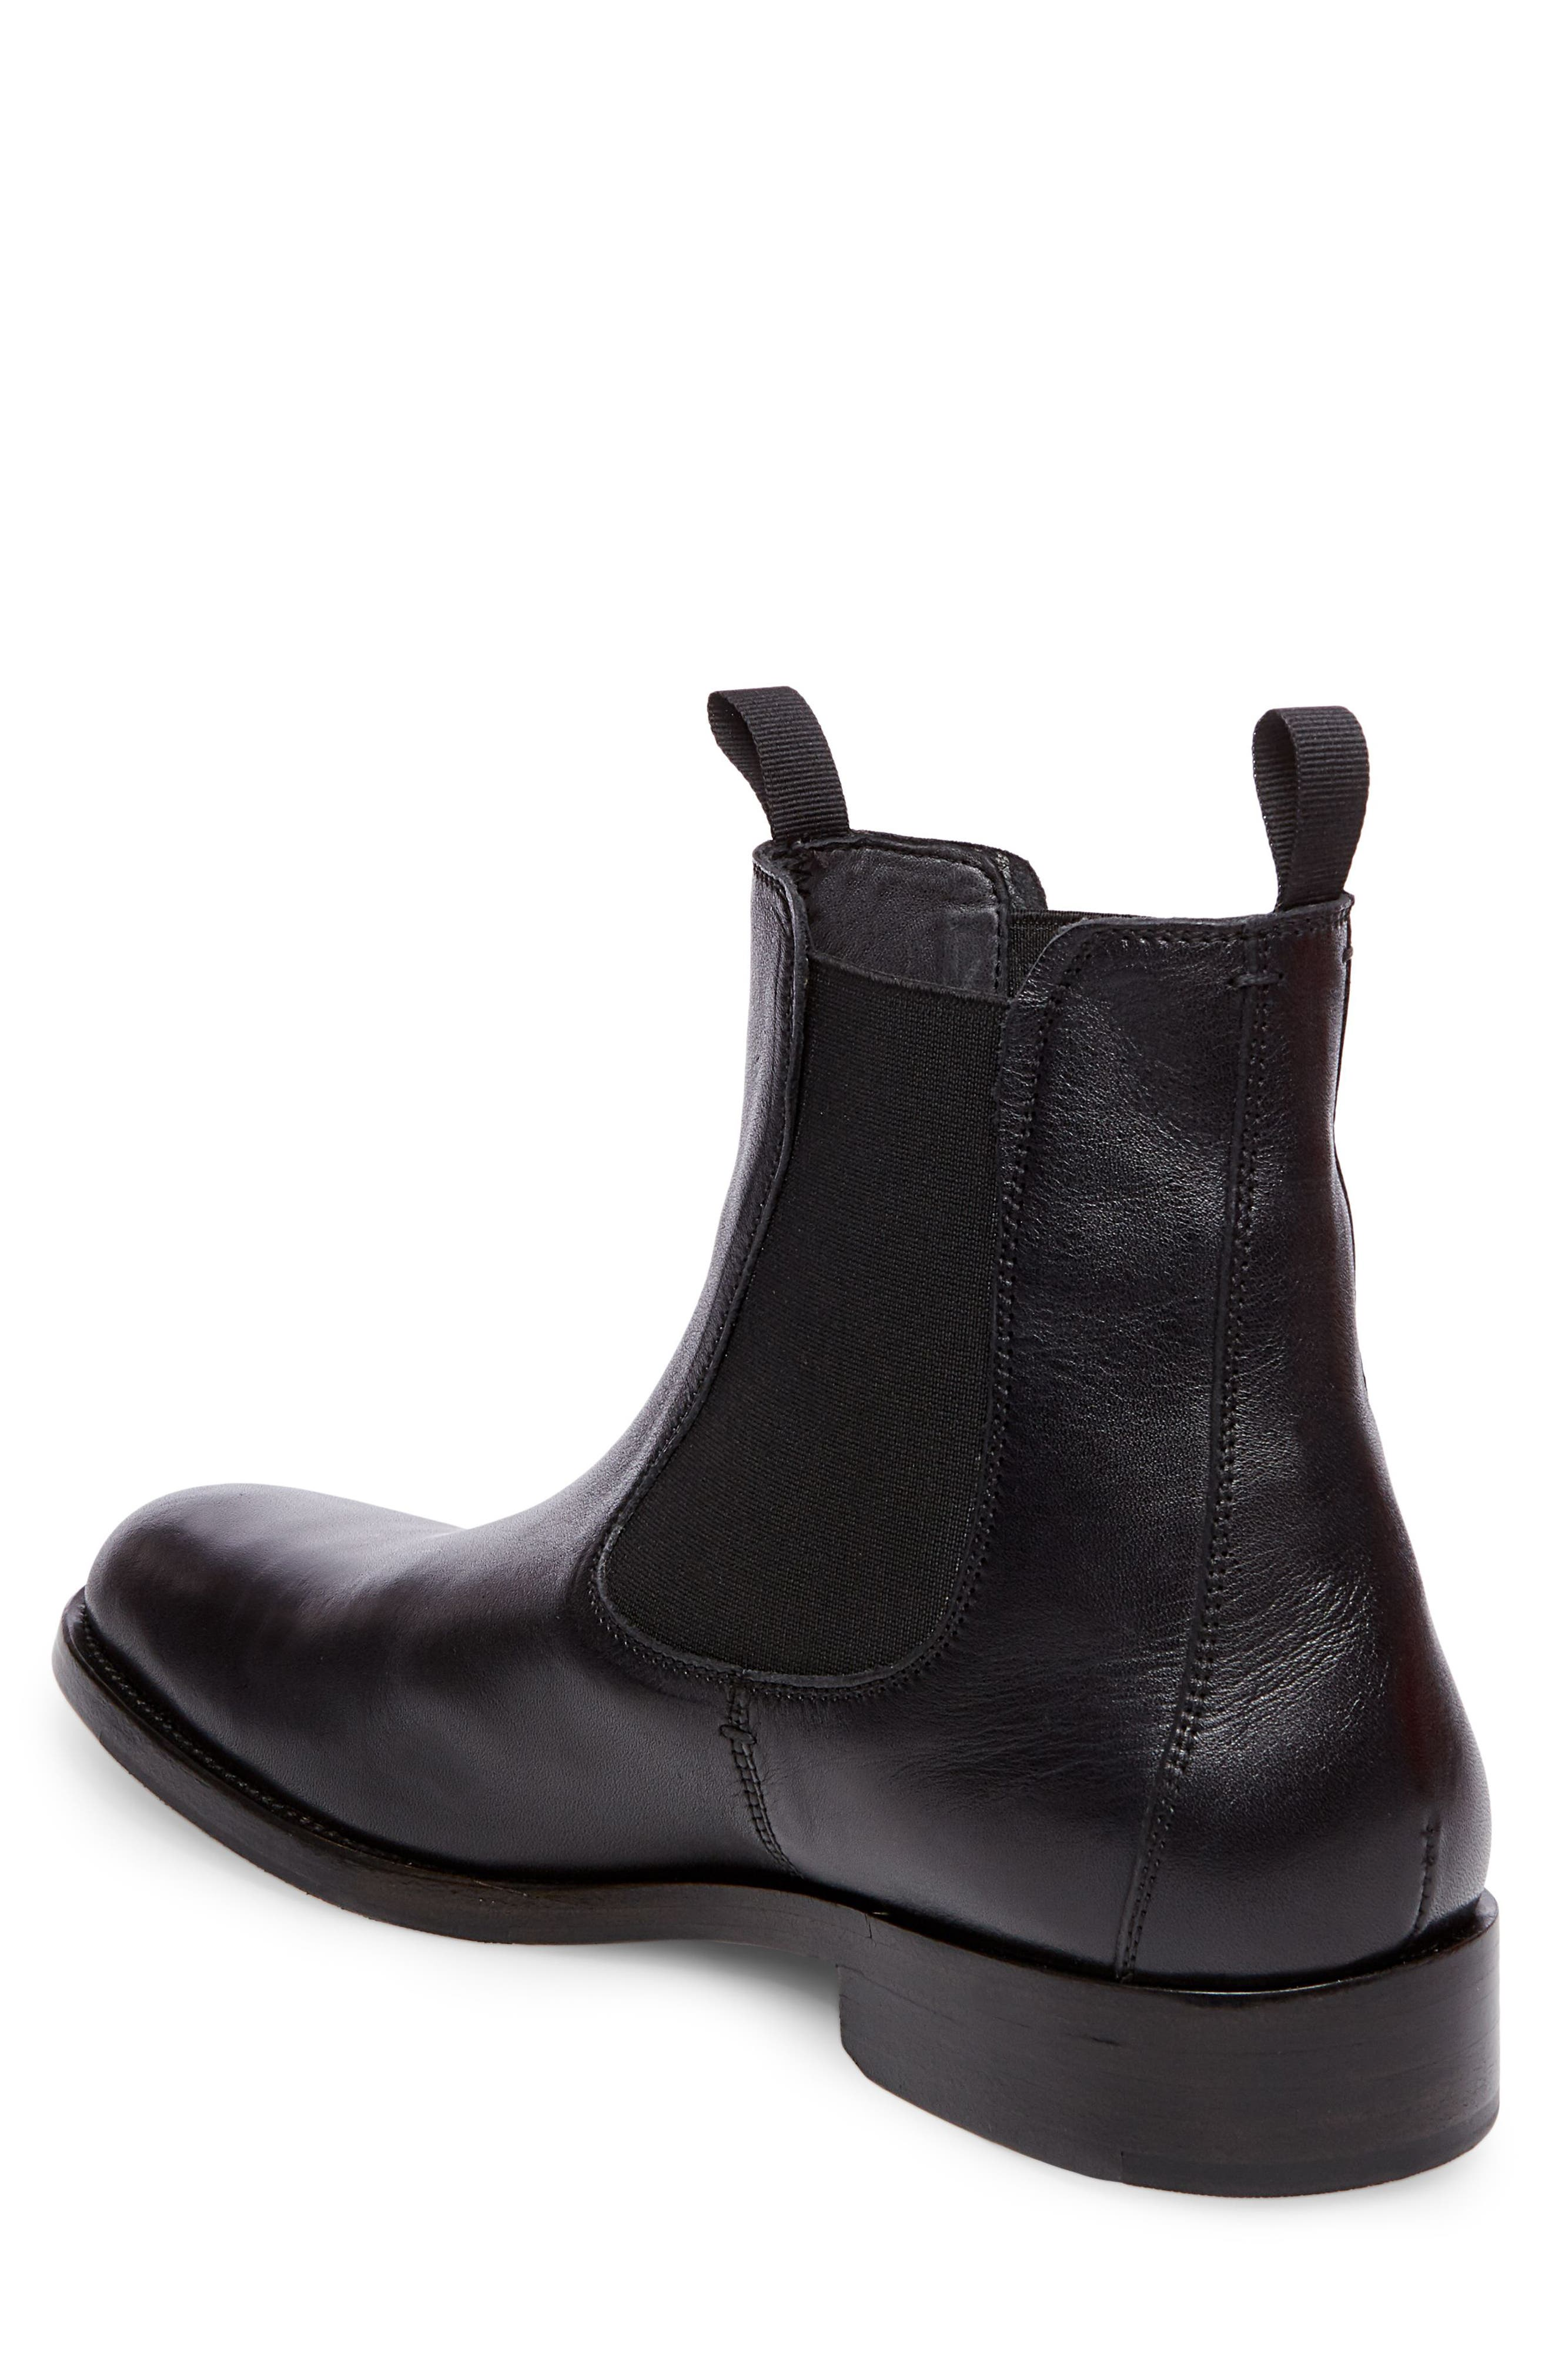 x GQ Nick Chelsea Boot,                             Alternate thumbnail 2, color,                             Black Leather